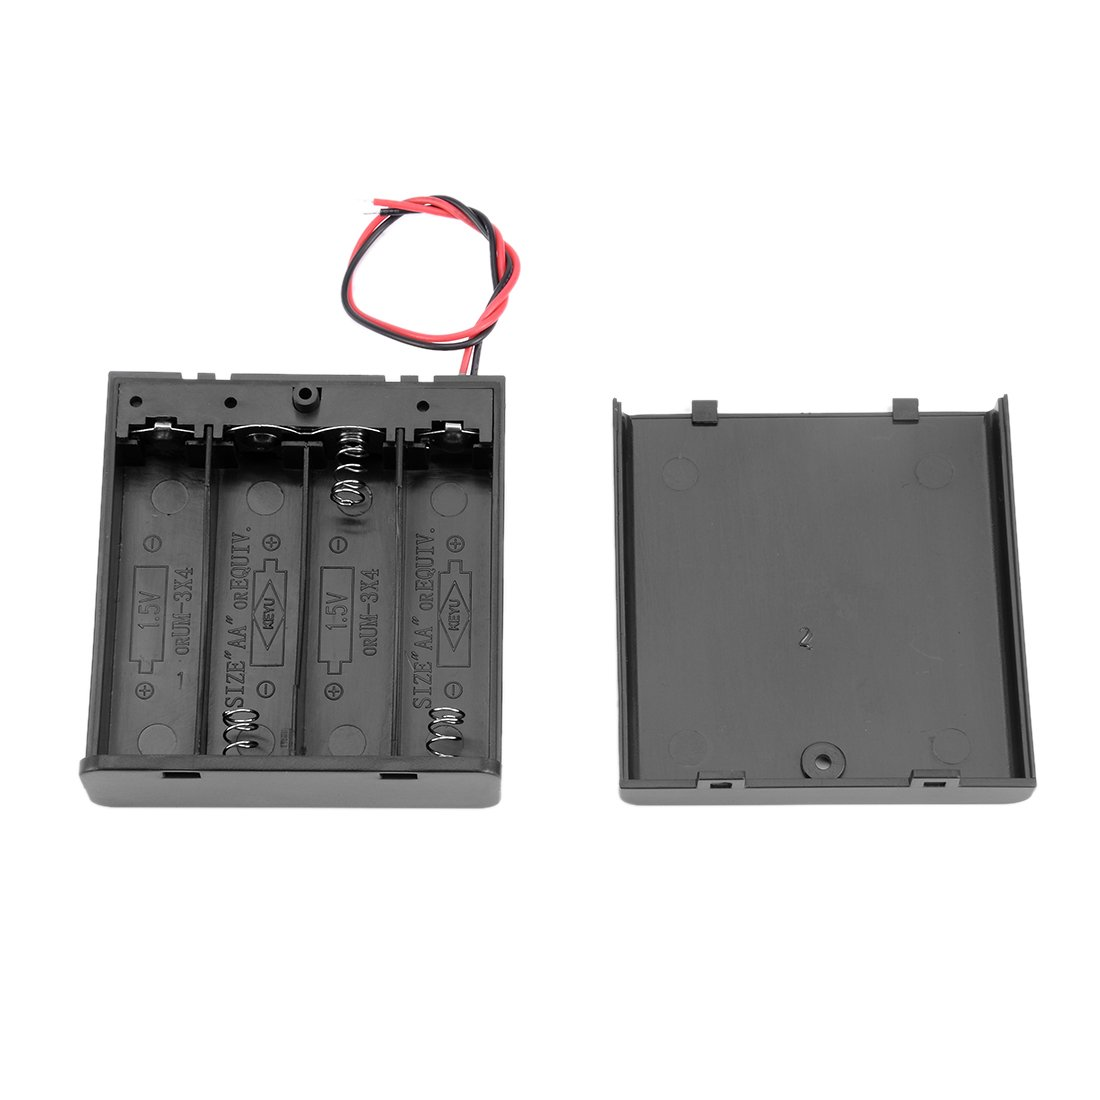 Saim Aa 6v Battery Holder Case Wired On Off Switch W Wiring Batteries In Series Cover Pack Of 2 Electronics